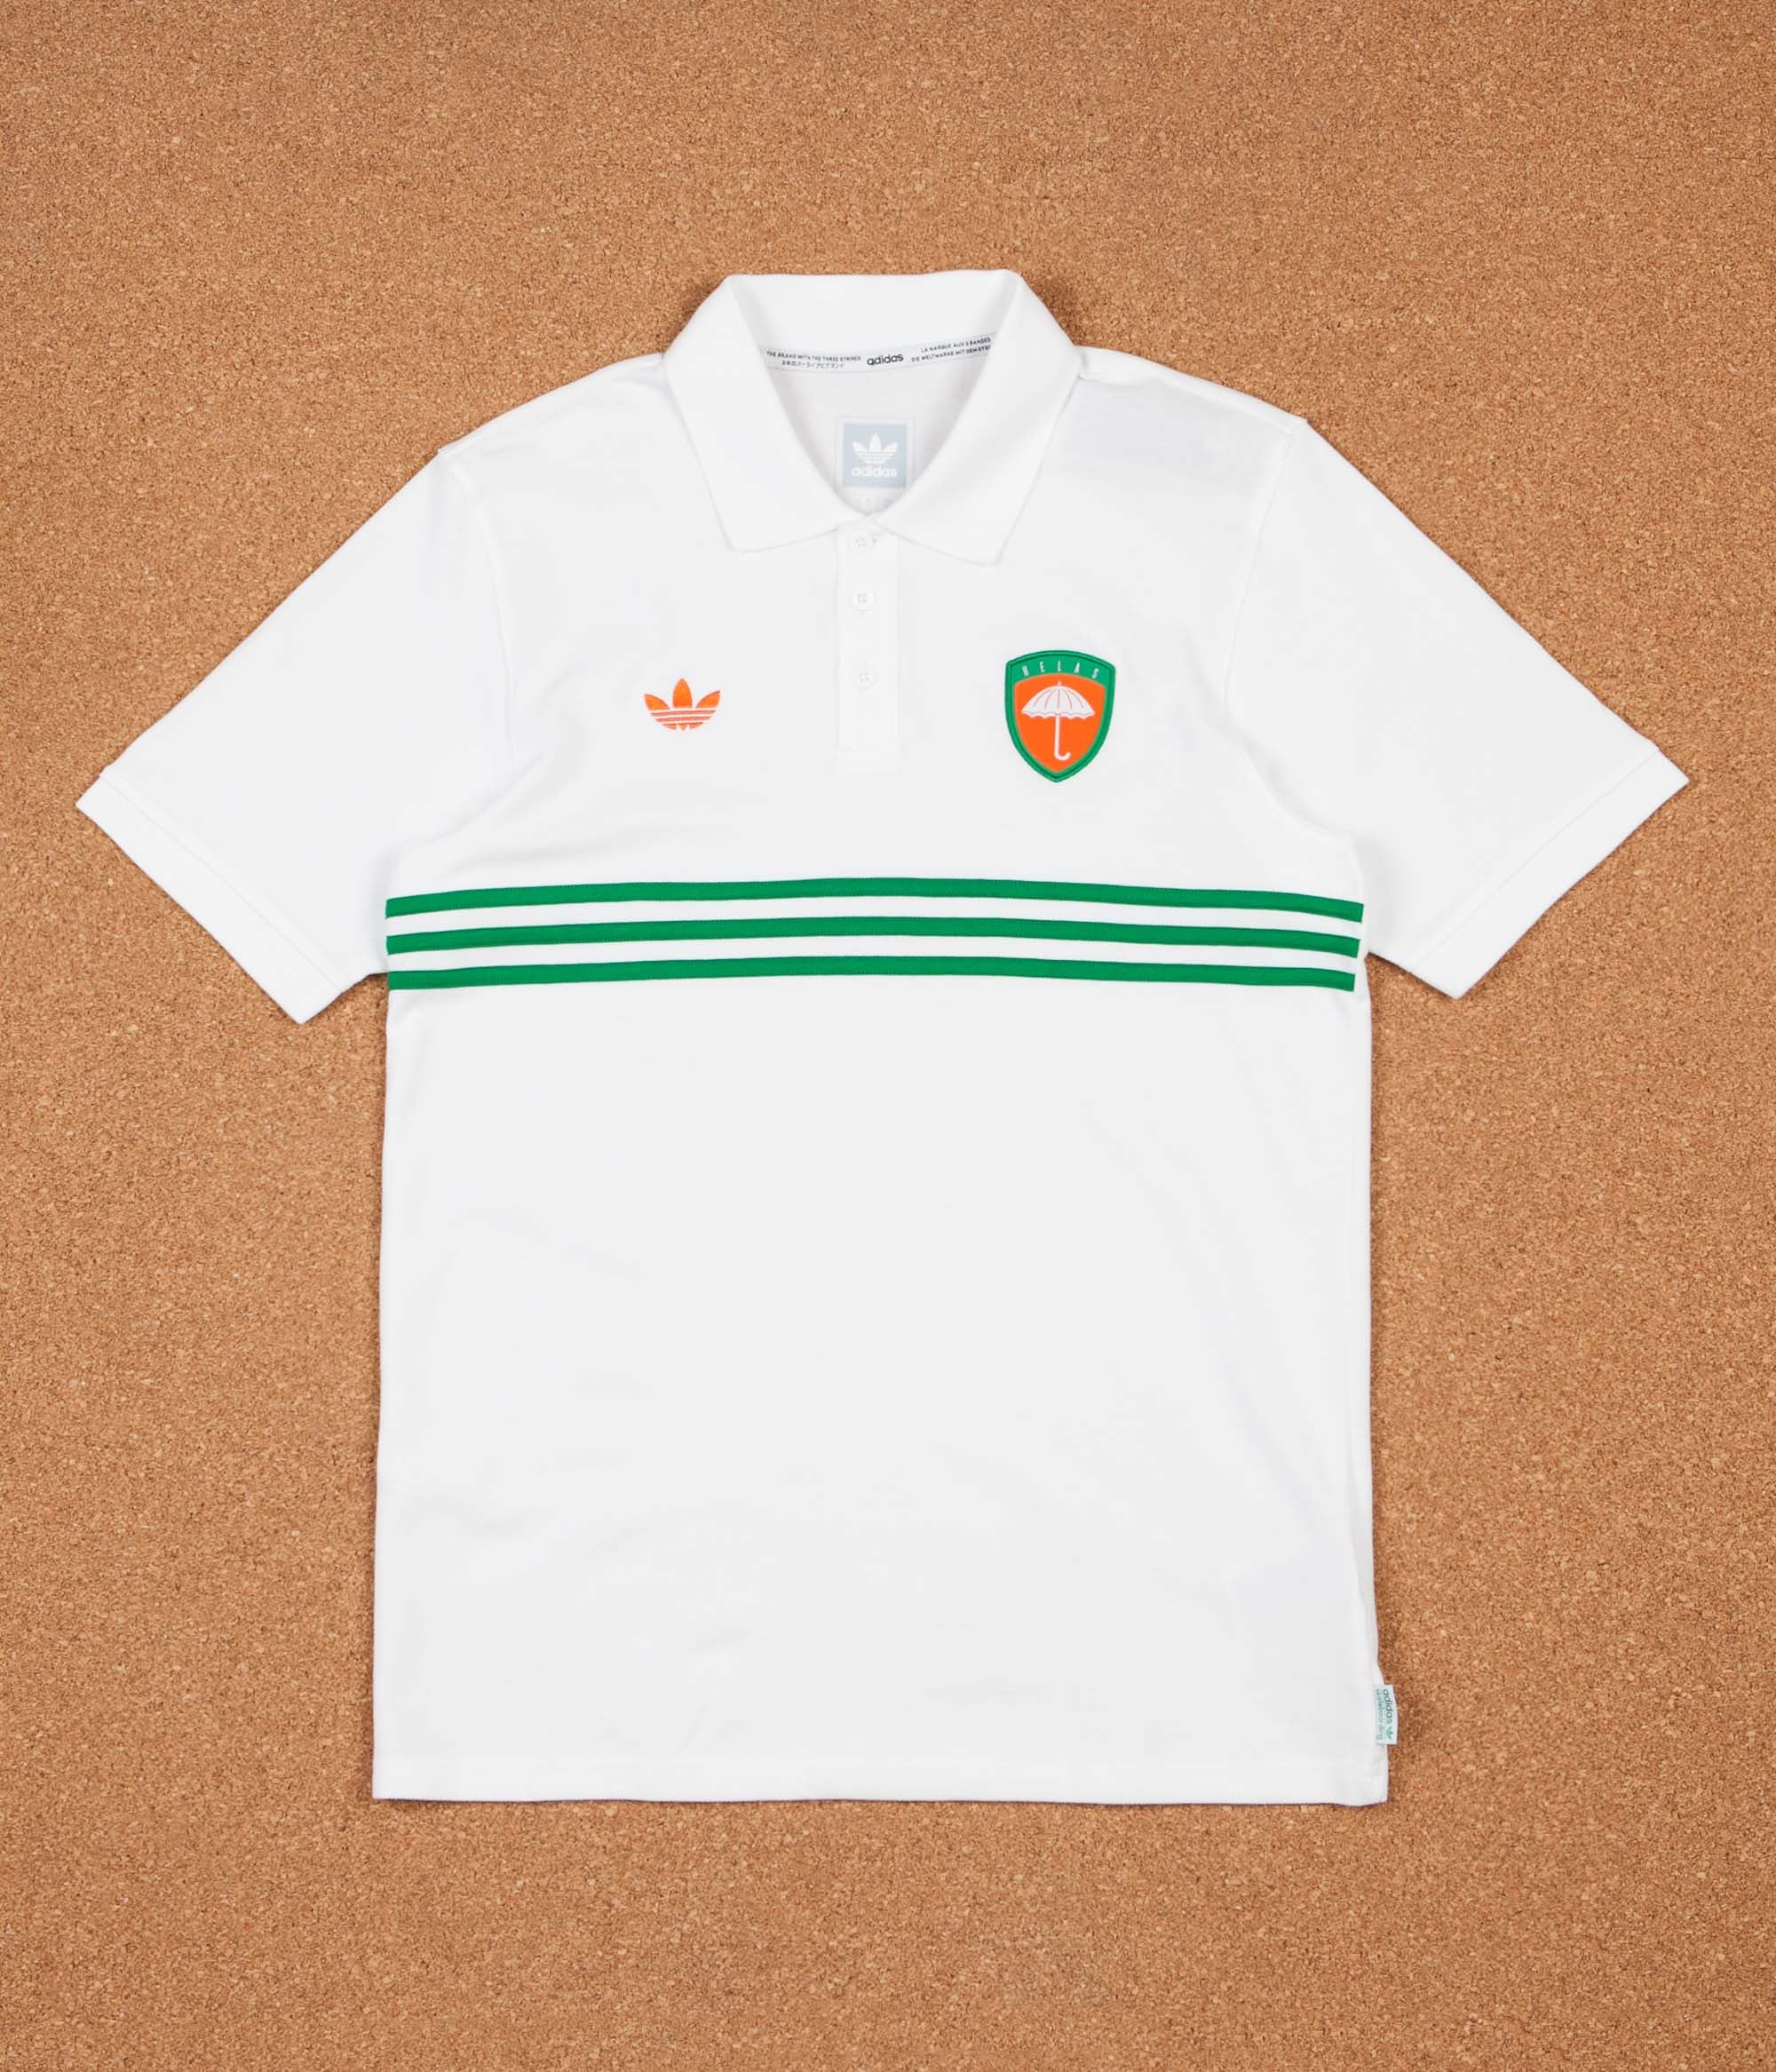 Adidas x Helas Polo Shirt White Green